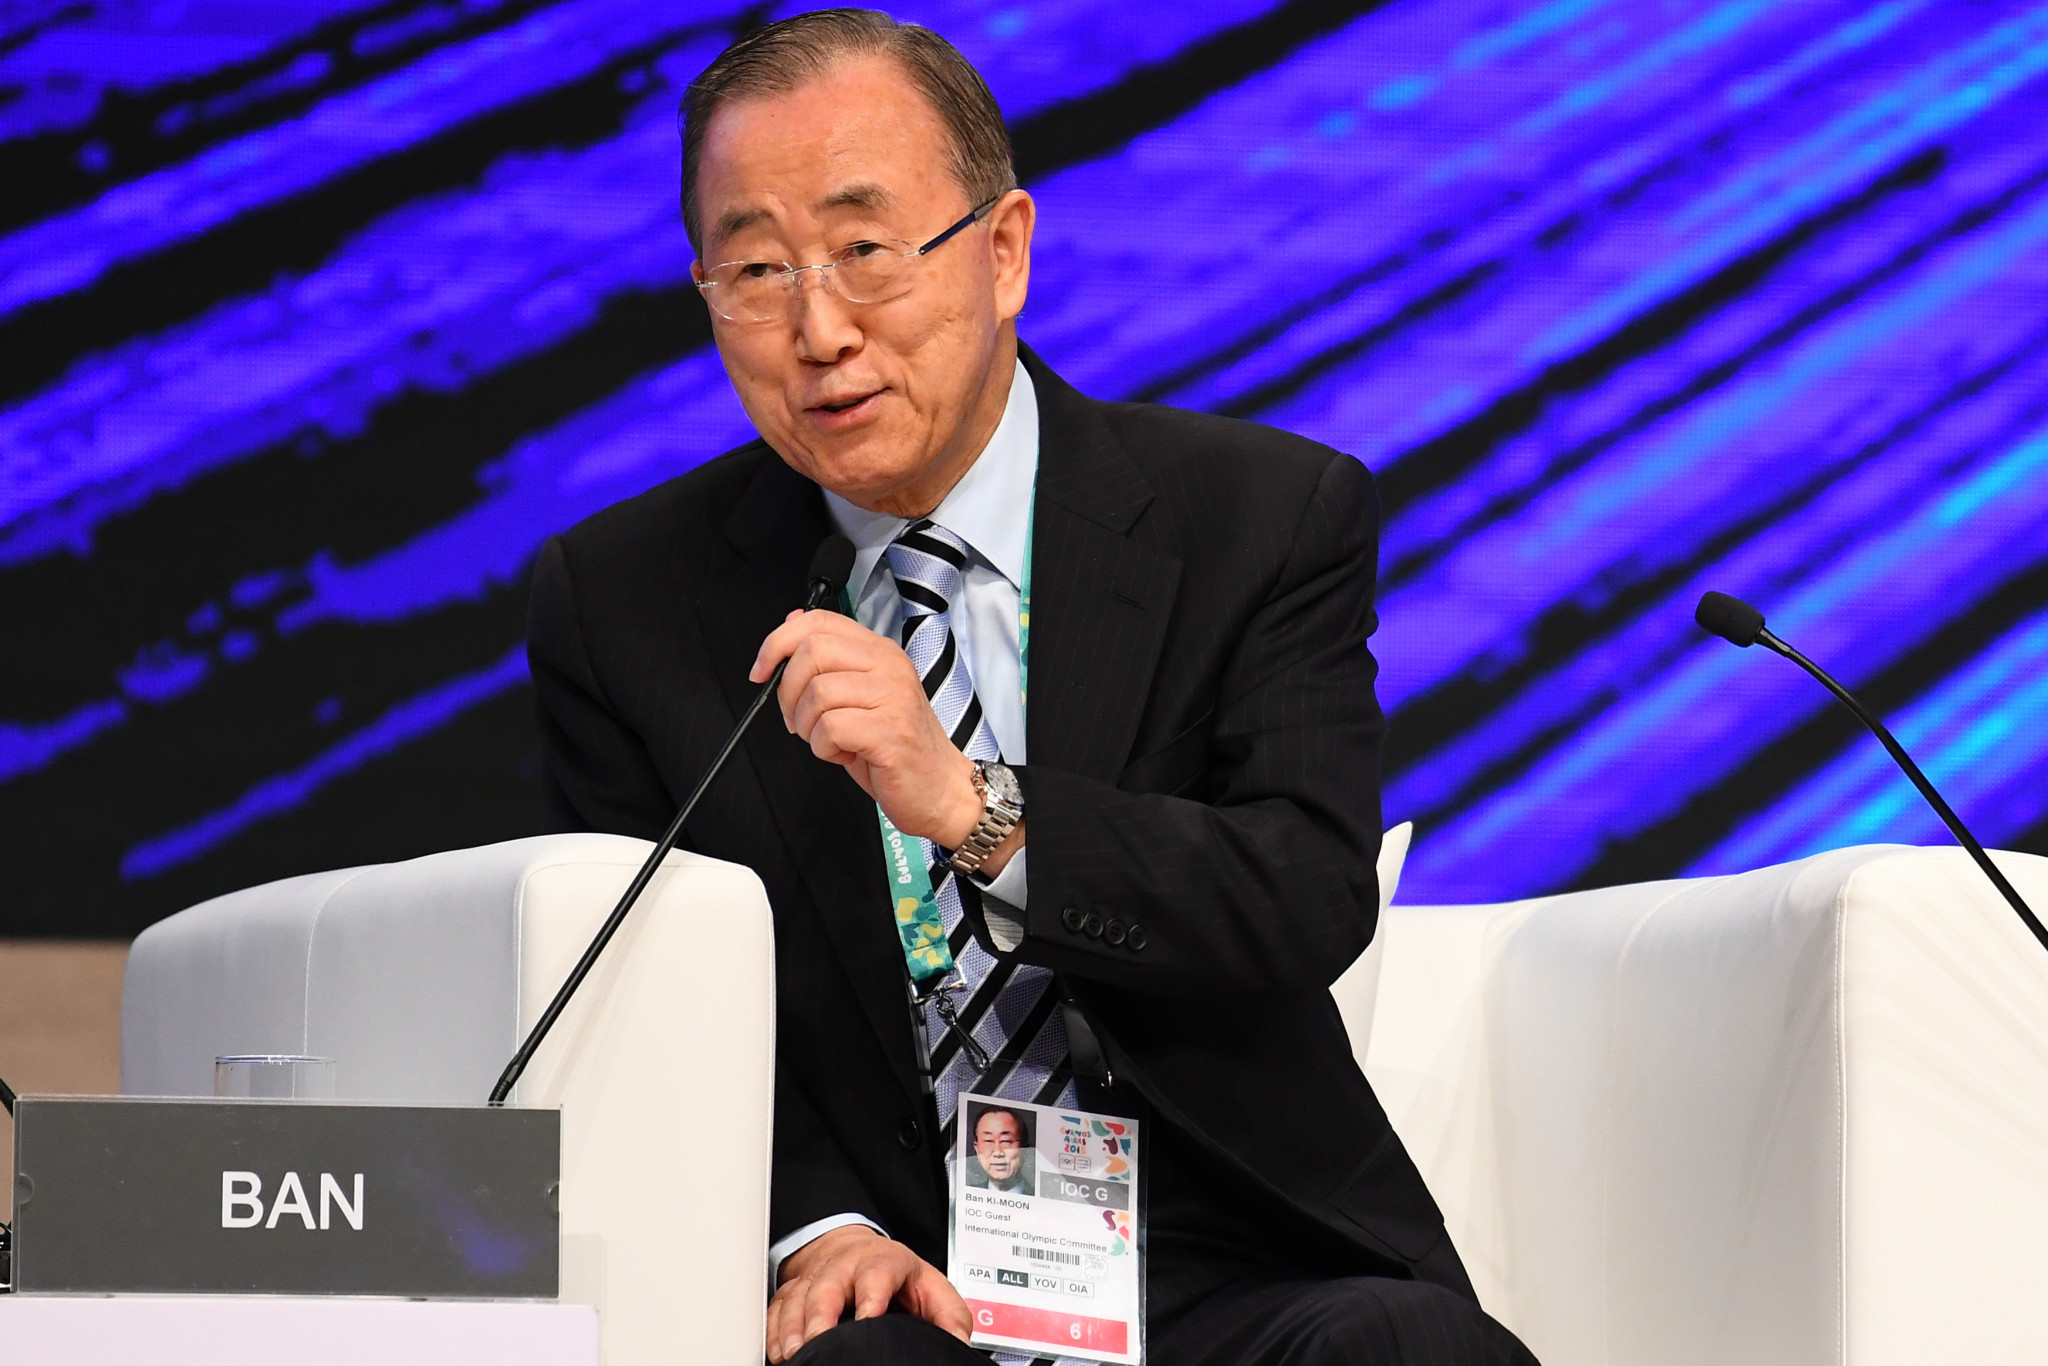 The Save Olympism Movement has reportedly written to former United Nations secretary general Ban Ki-moon, asking him to investigate ©Getty Images